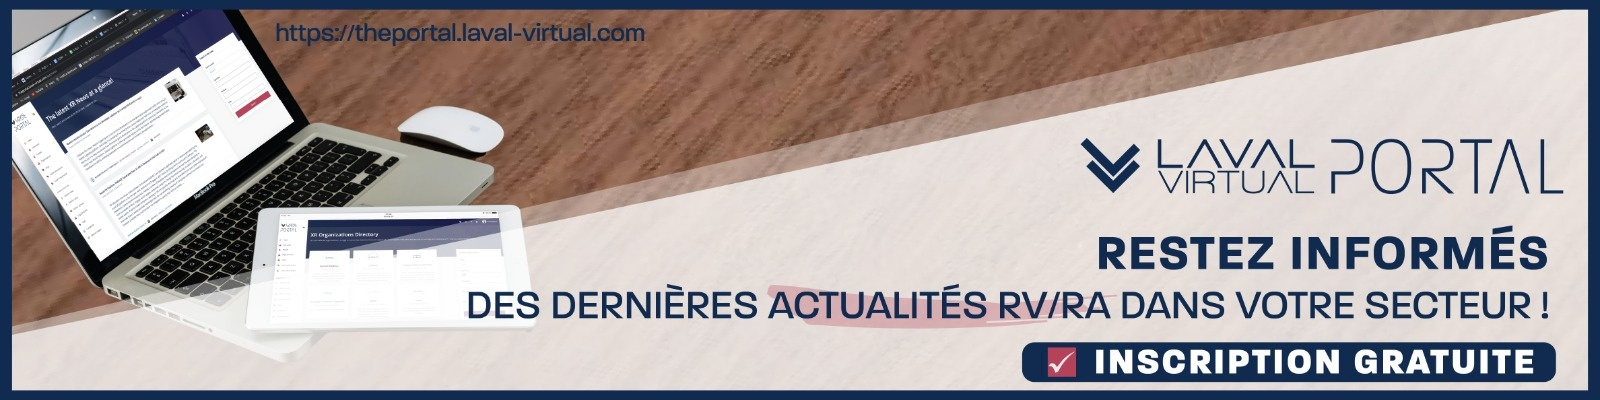 Inscription fil d'actualité VR/AR Laval Virtual